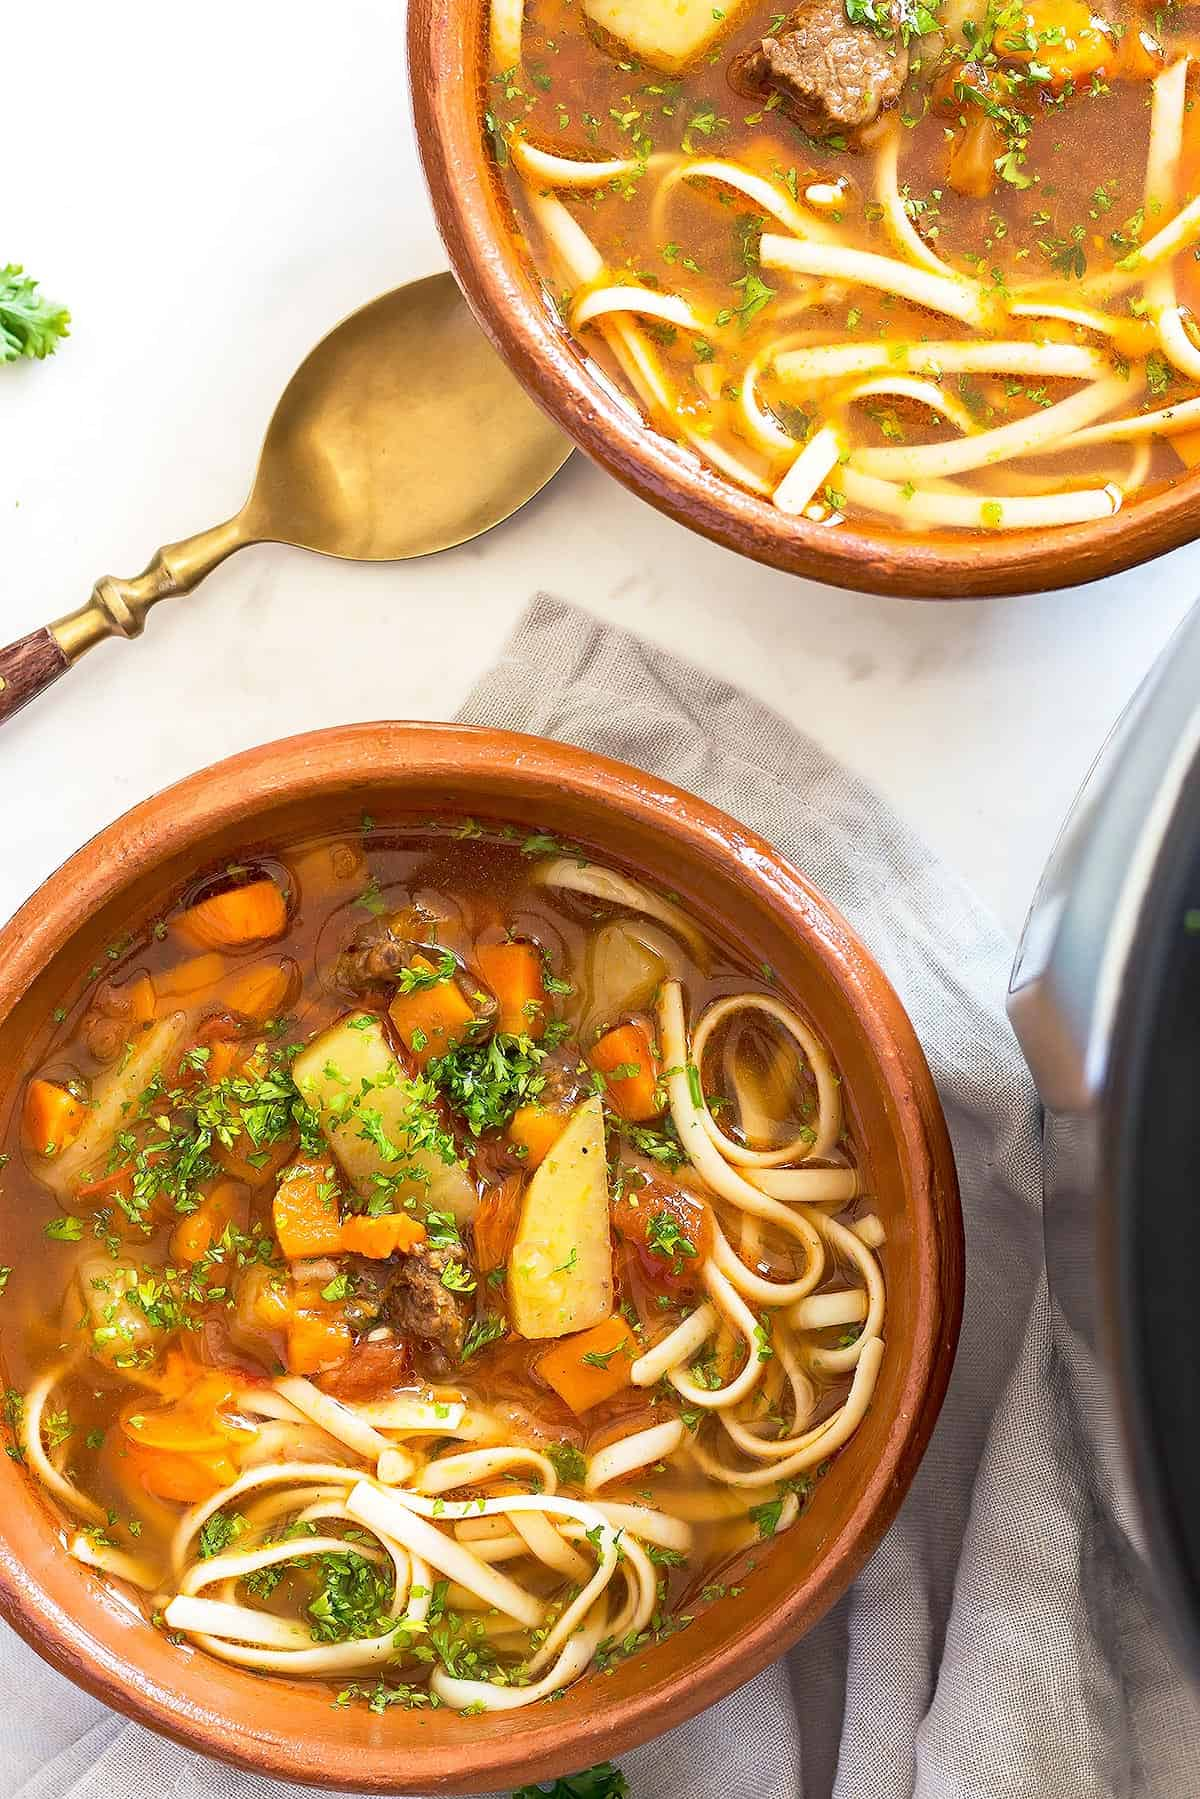 Vegetable Beef Soup with Noodles in 2 bowls